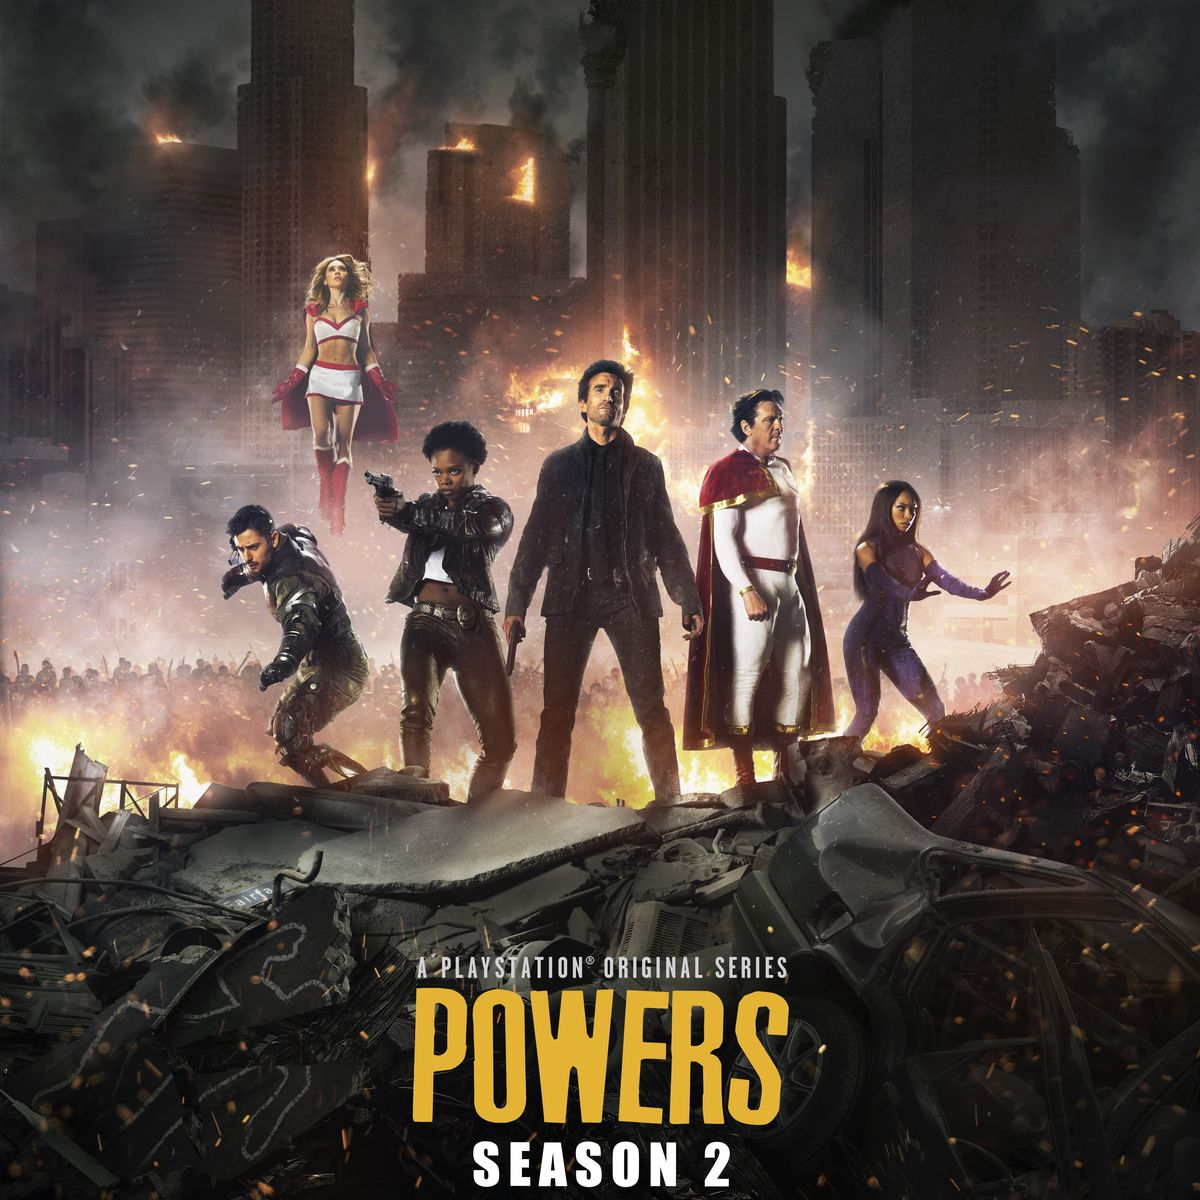 Powers-Season2-poster.jpg